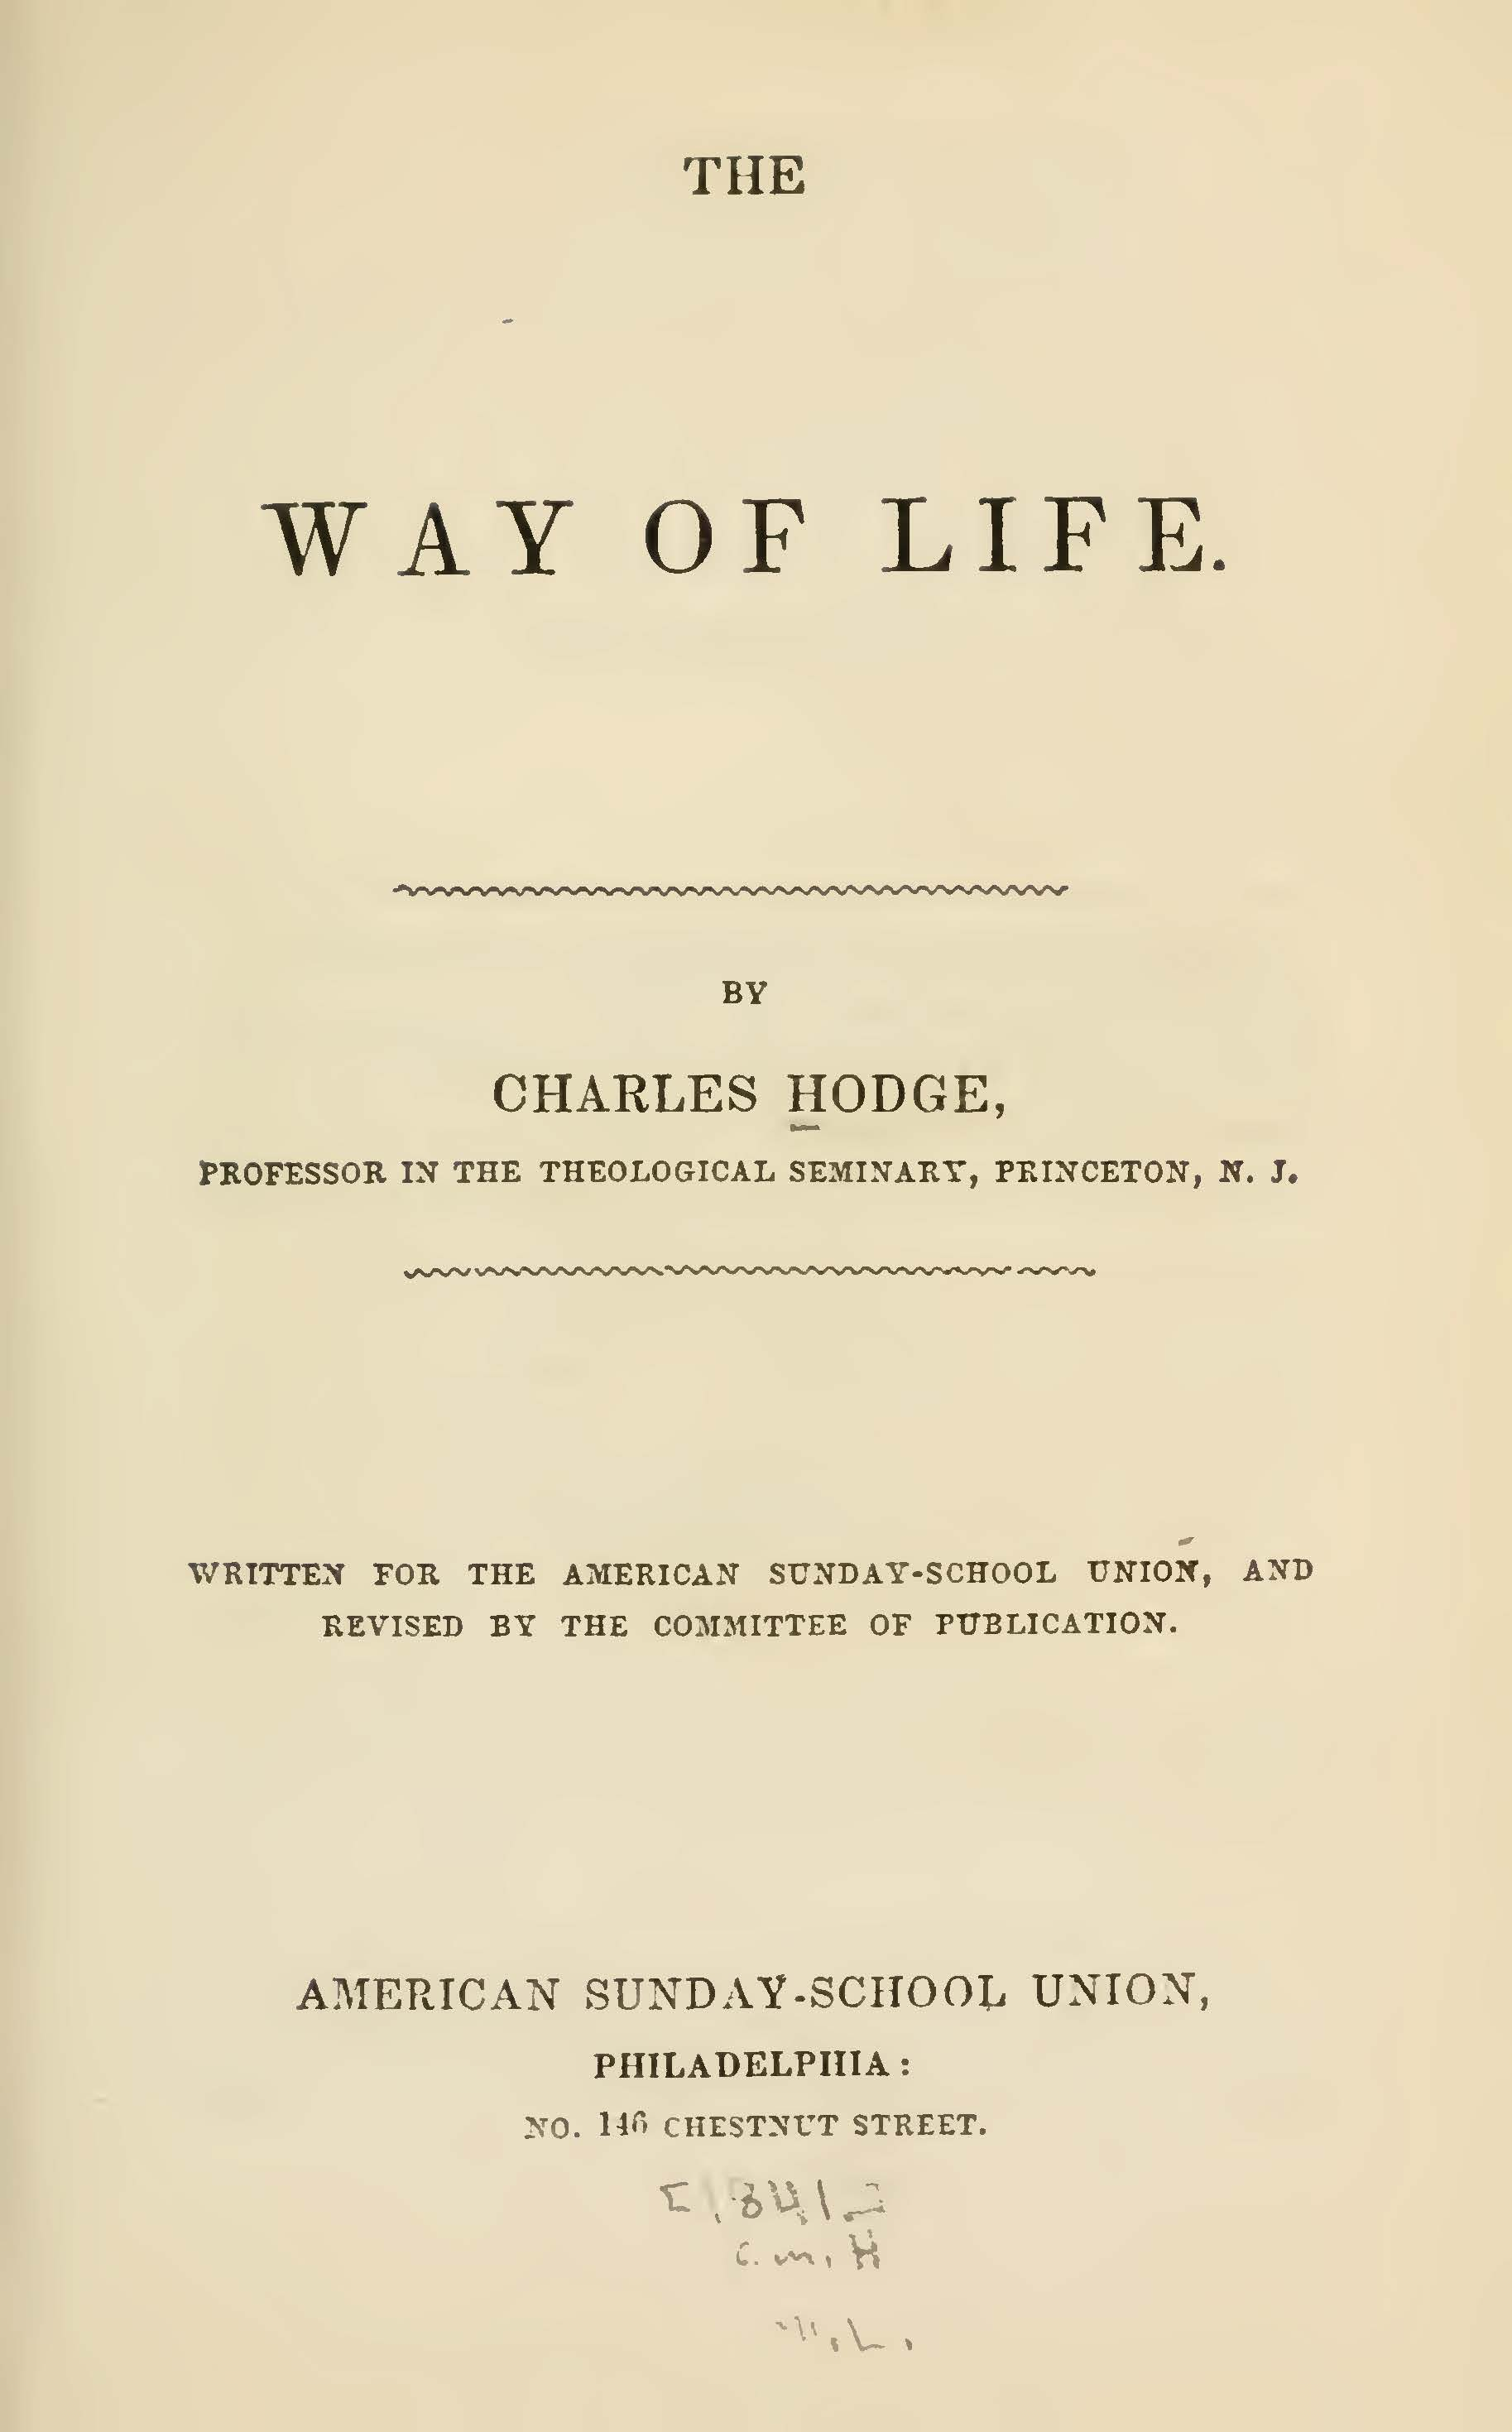 Hodge, Charles, The Way of Life Title Page.jpg